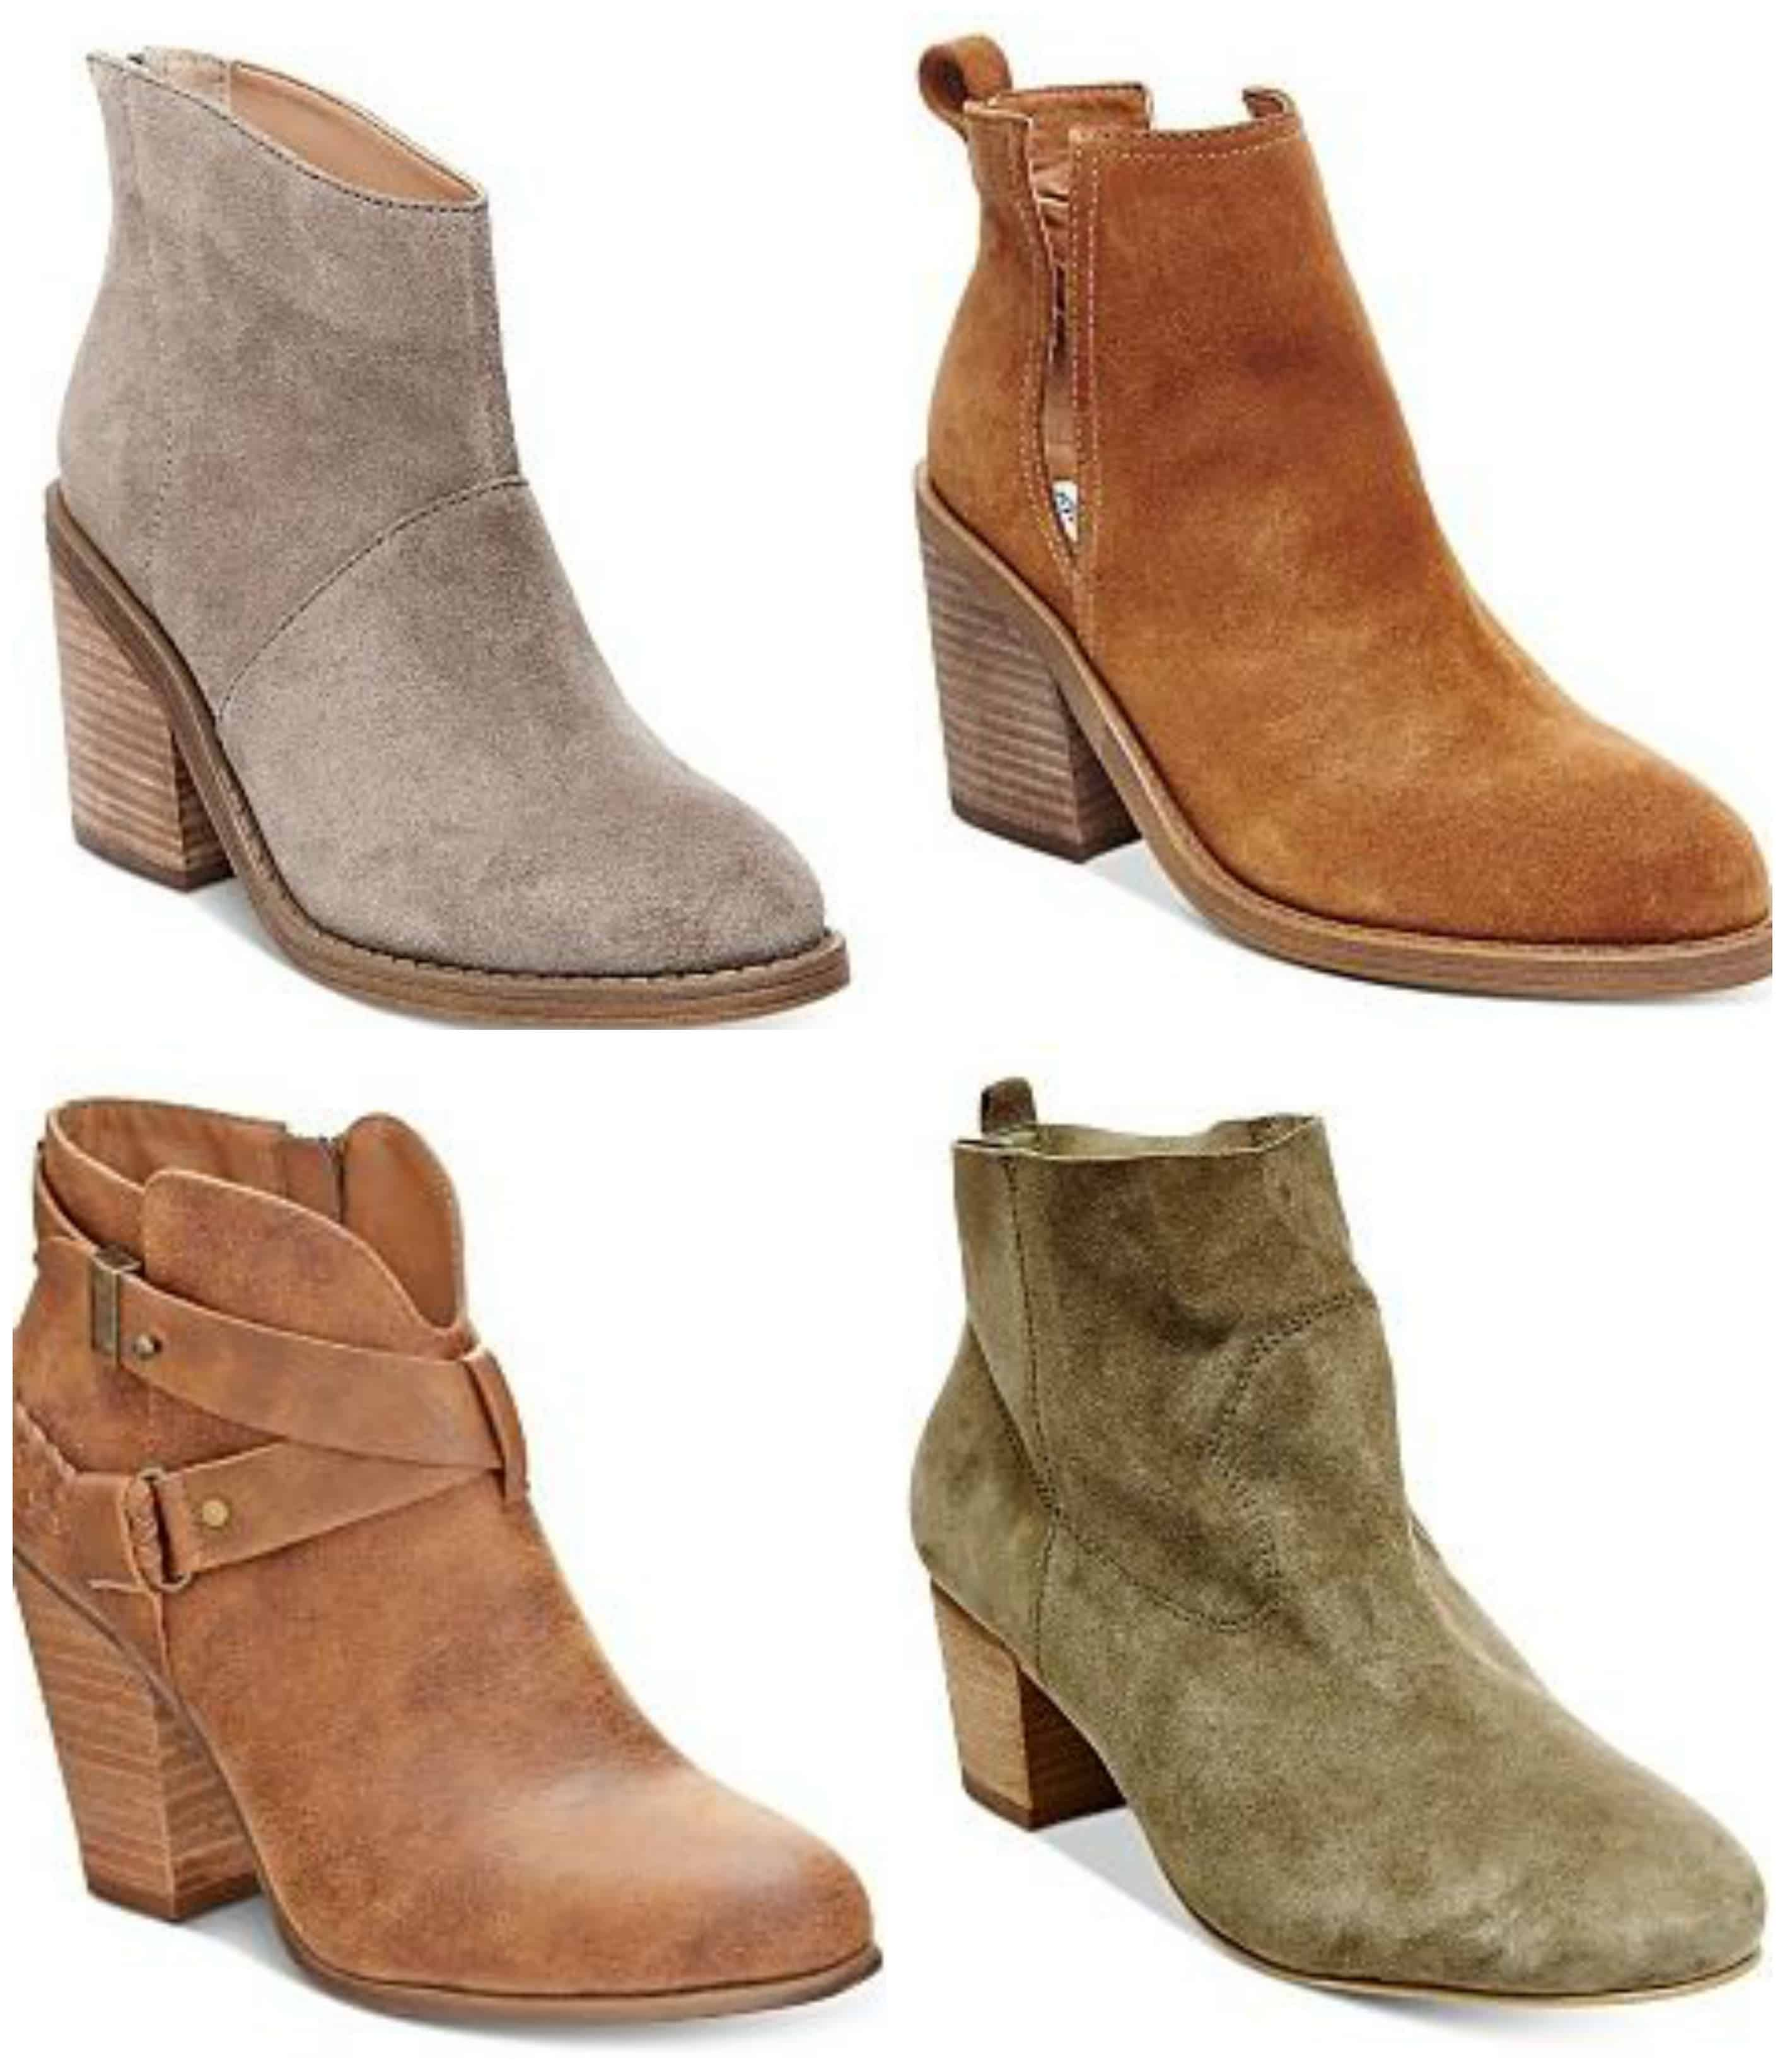 macys womens shoes and boots